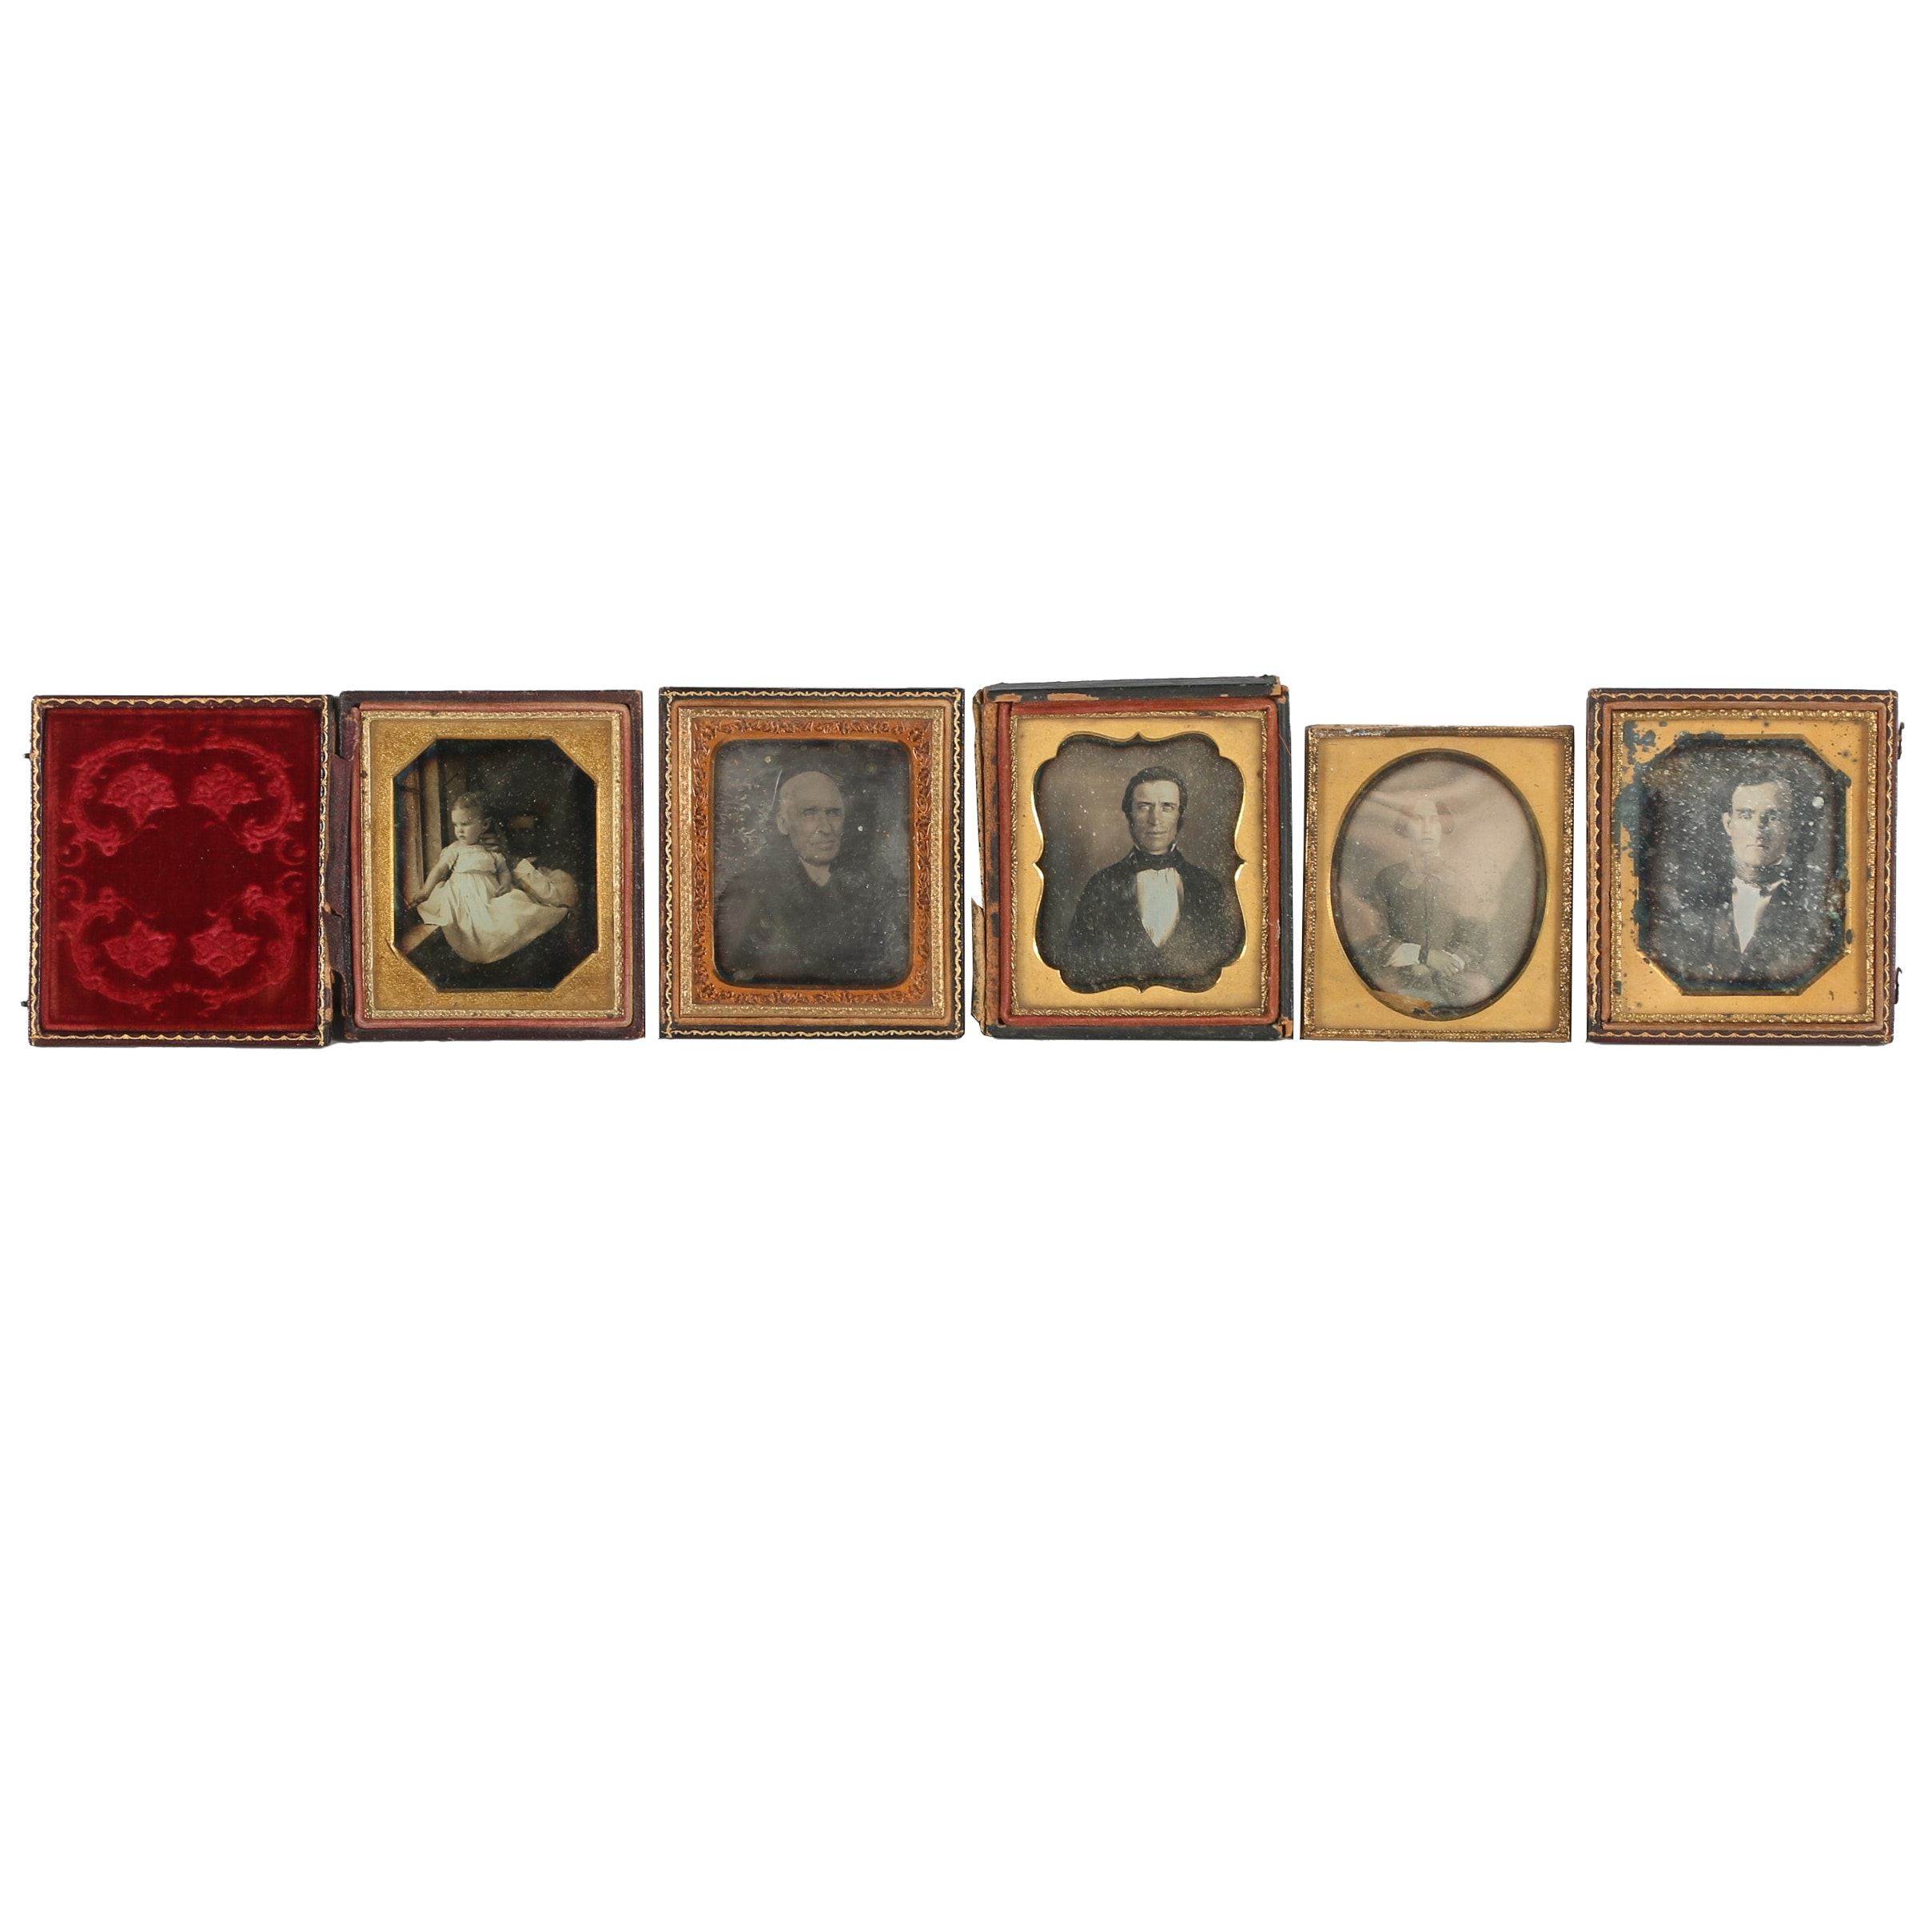 Antique Ambrotype Portraits in Leather Cases